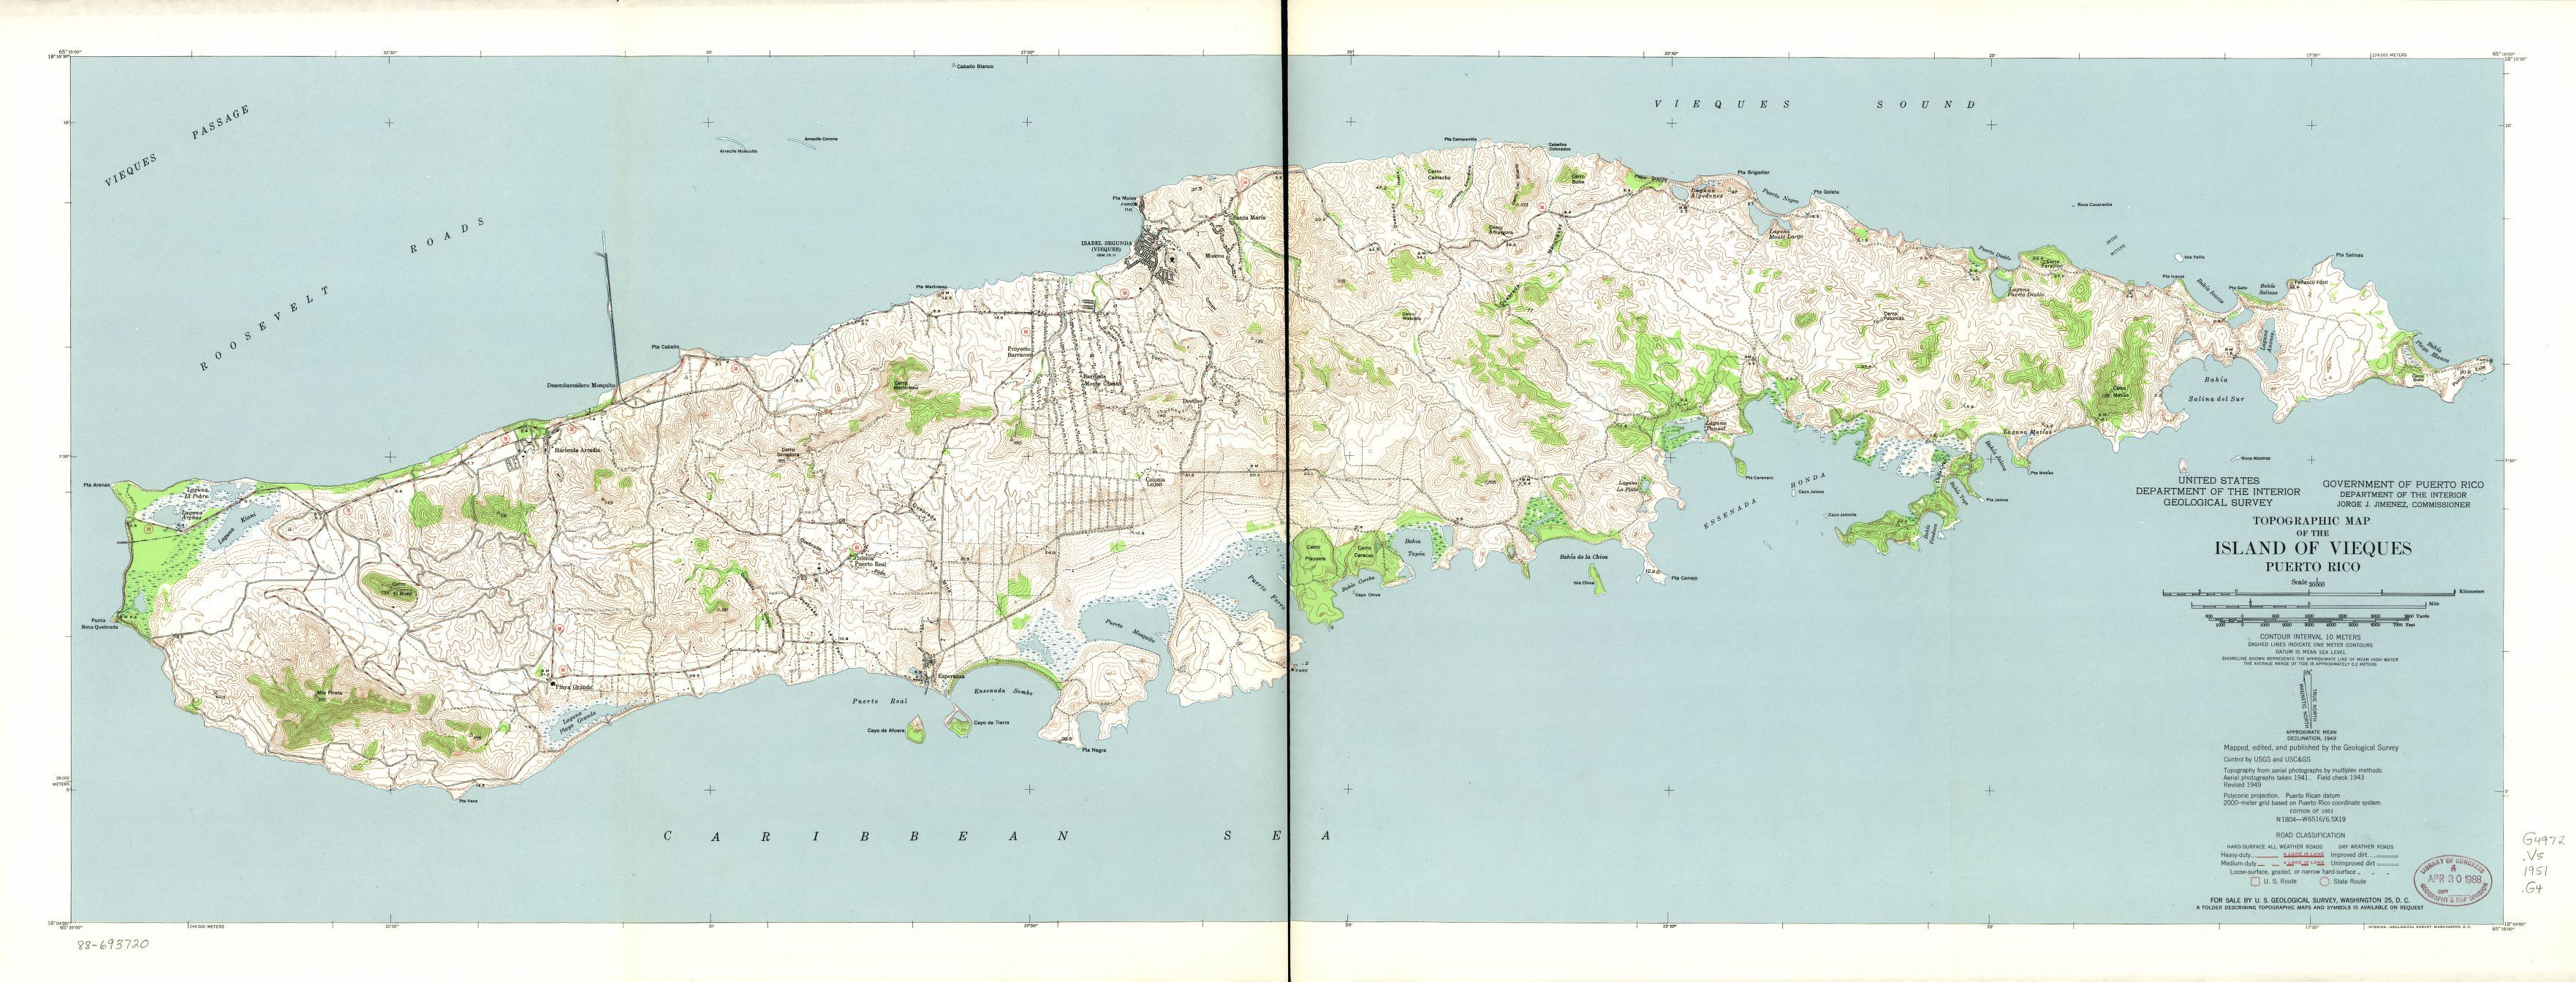 Topographic Map Of The Island Of Vieques Puerto Rico